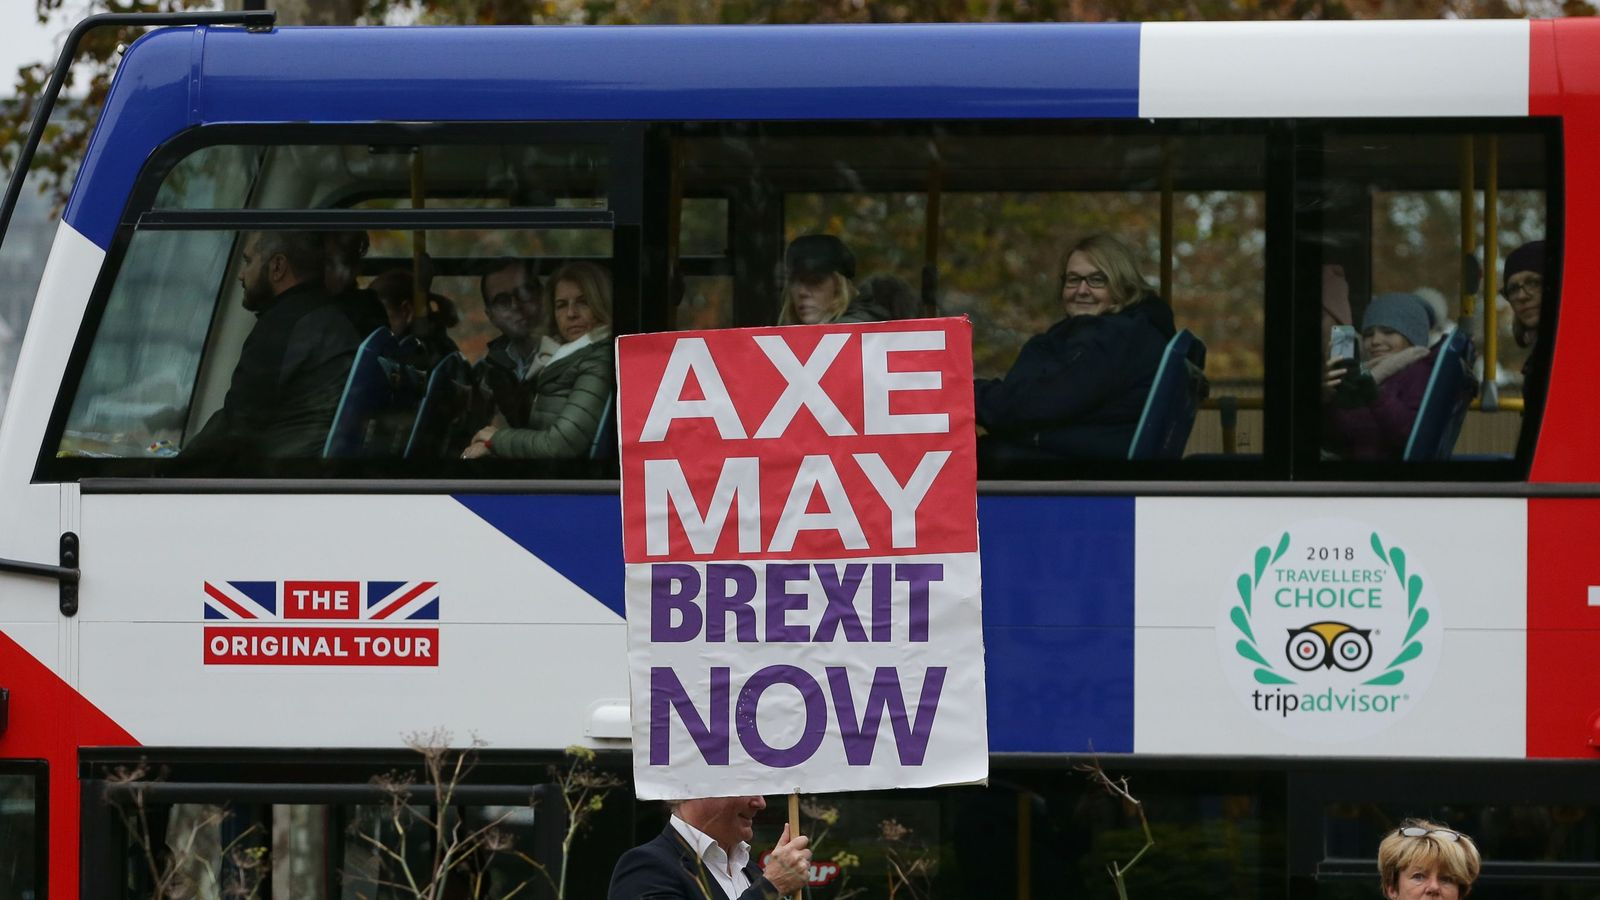 Brexit News: Leave Campaign Donors Say 'no-deal' Brexit Is Better Than